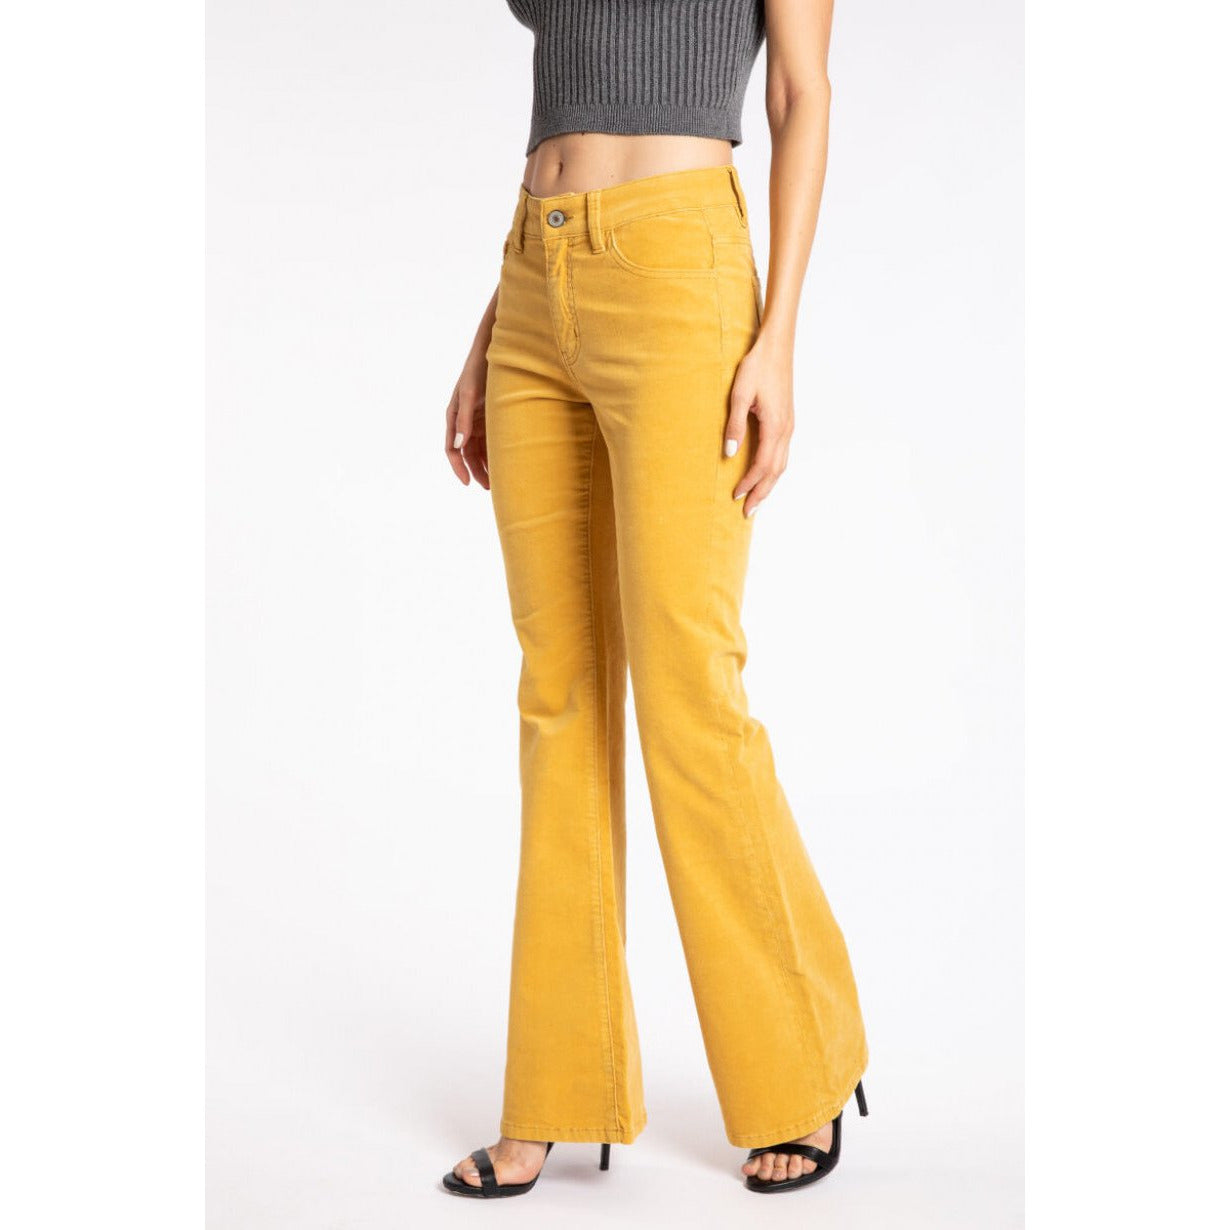 Mustard yellow corduroy pants, by Kancan - All Blinged Out/Calamity's